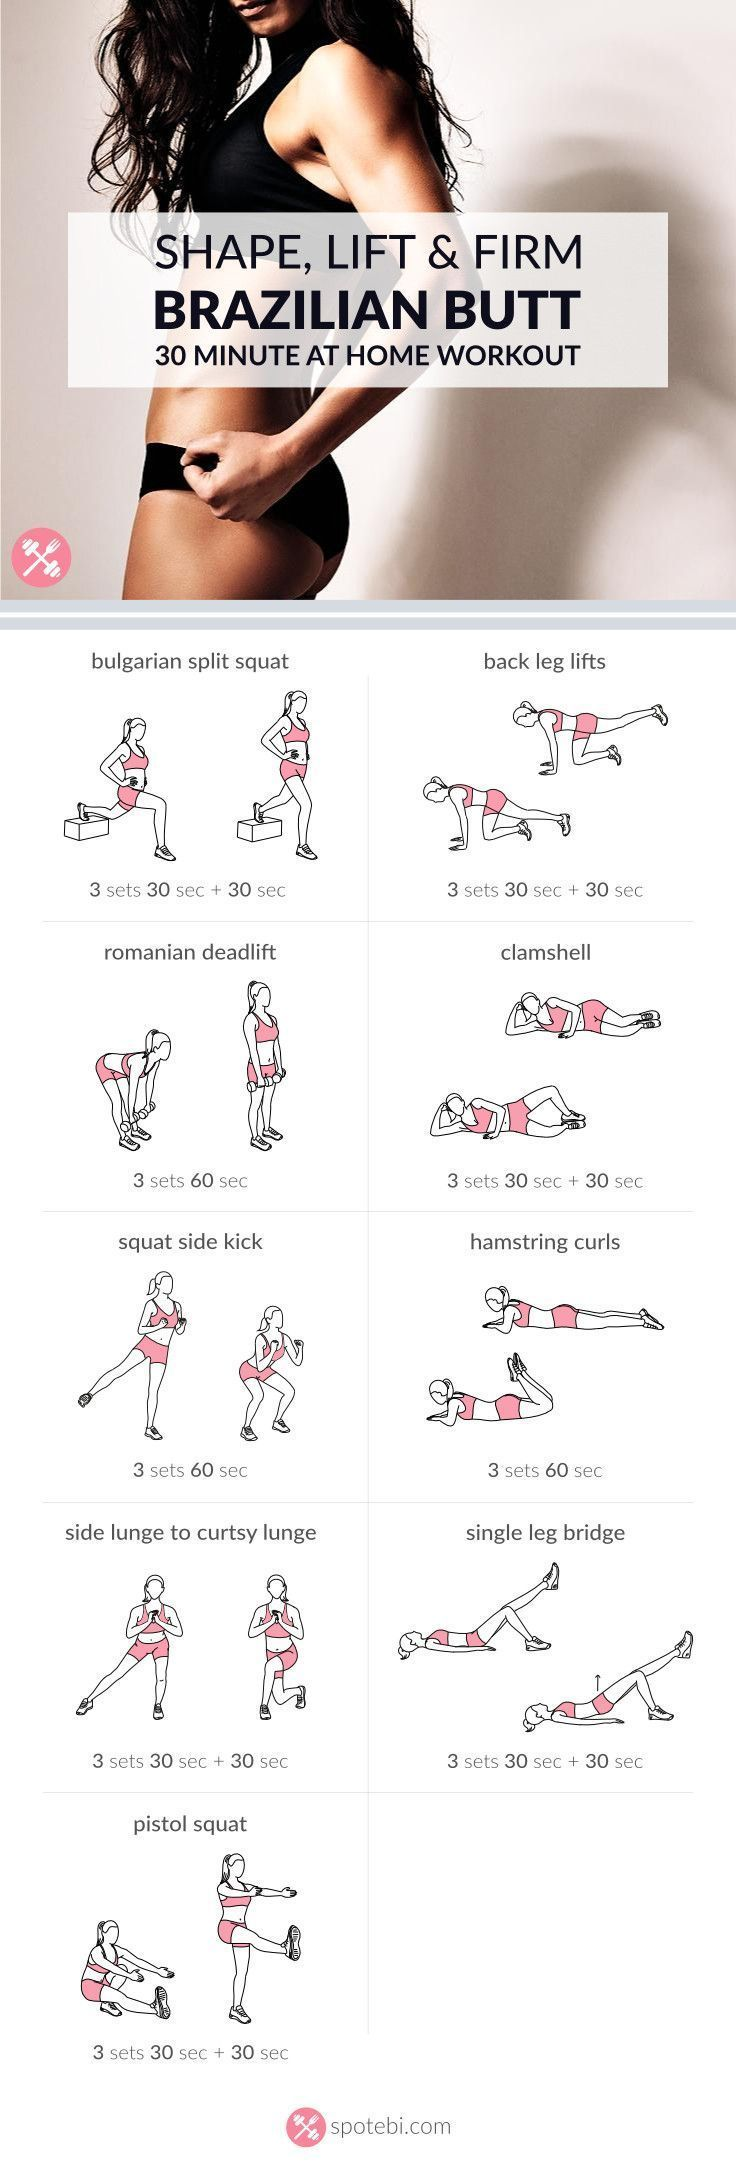 Want to know the secret to a perfect booty? Try this 30 minute sculpting and lifting Brazilian butt workout. Shape and firm your glutes and thighs fast! www.spotebi.com/...